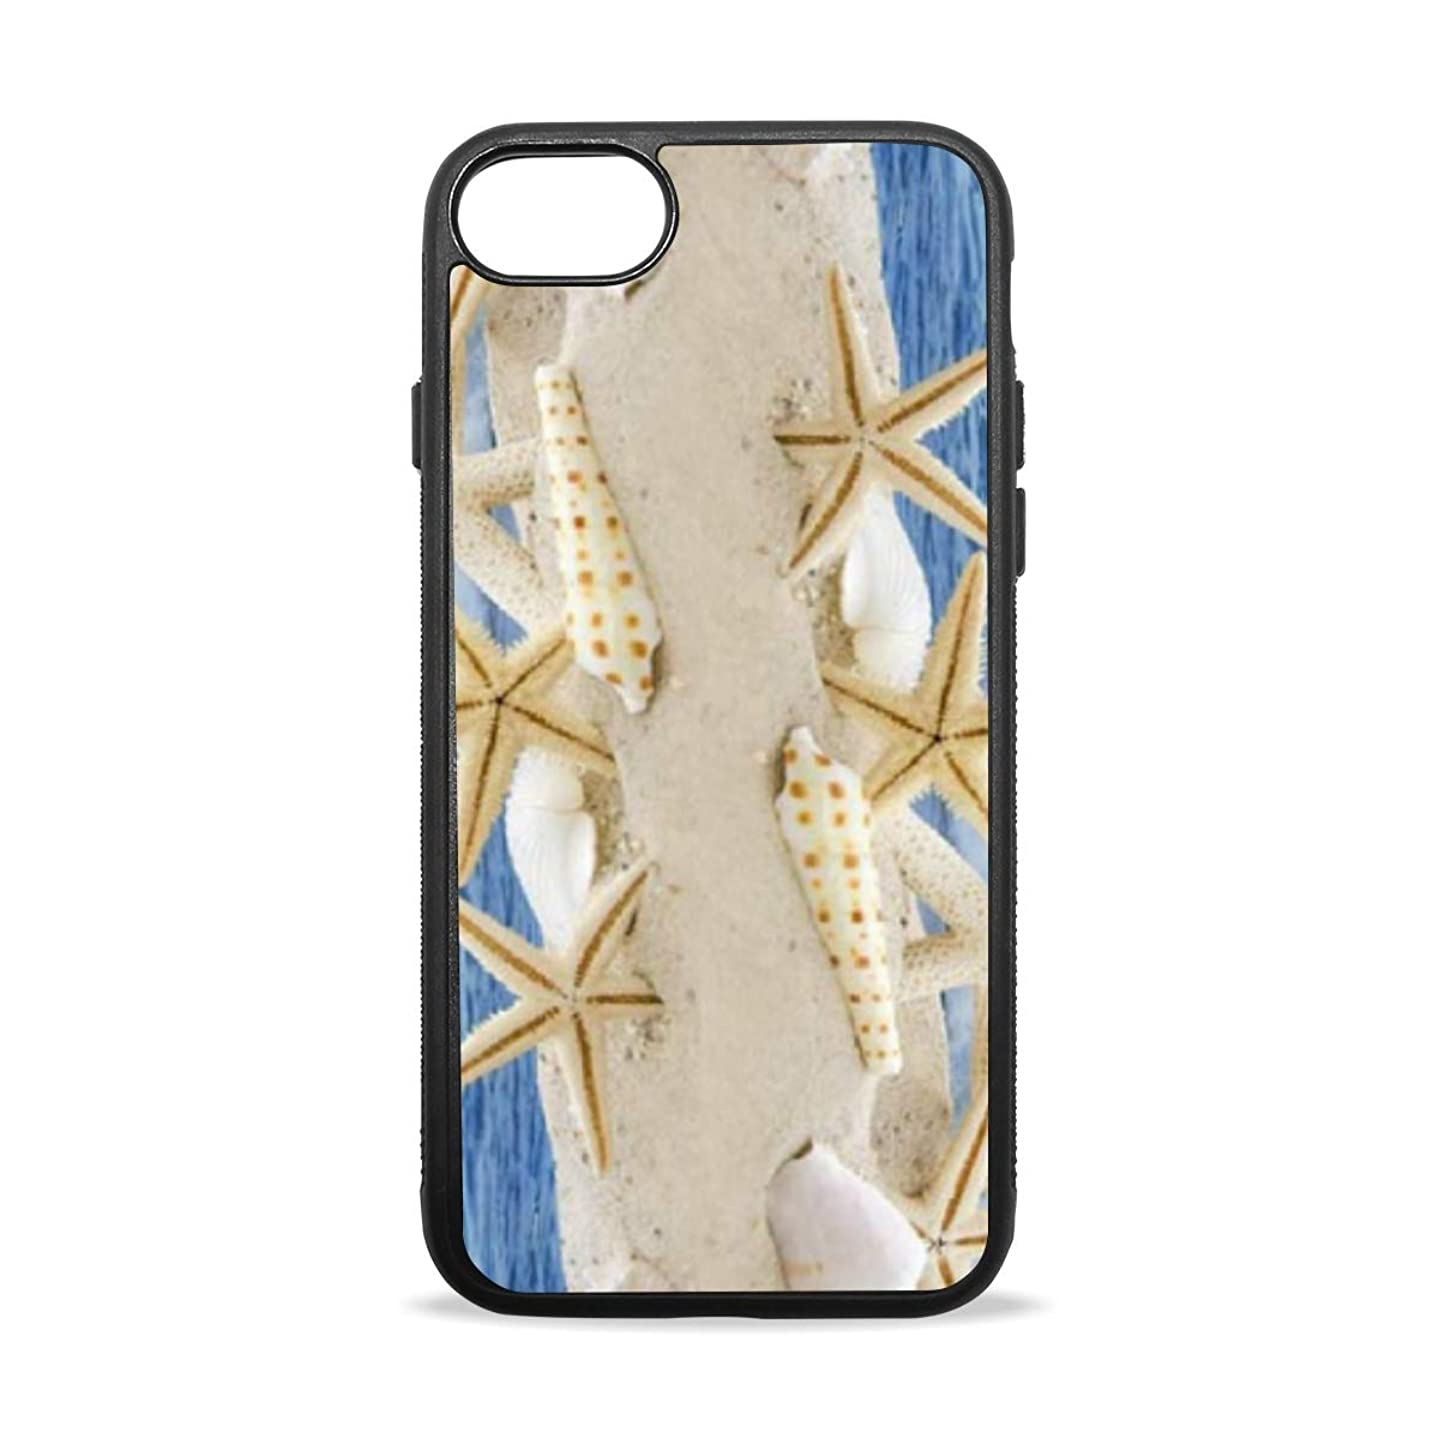 Apple Case Shockproof Slim TPU Protective Cover Seashells Starfish Wood On The Beach Soft Rubber Silicone Cover Phone Case Compatible with iPhone 7/8 iPhone 7/8 Plus [4.7 inch/5.5 inch]